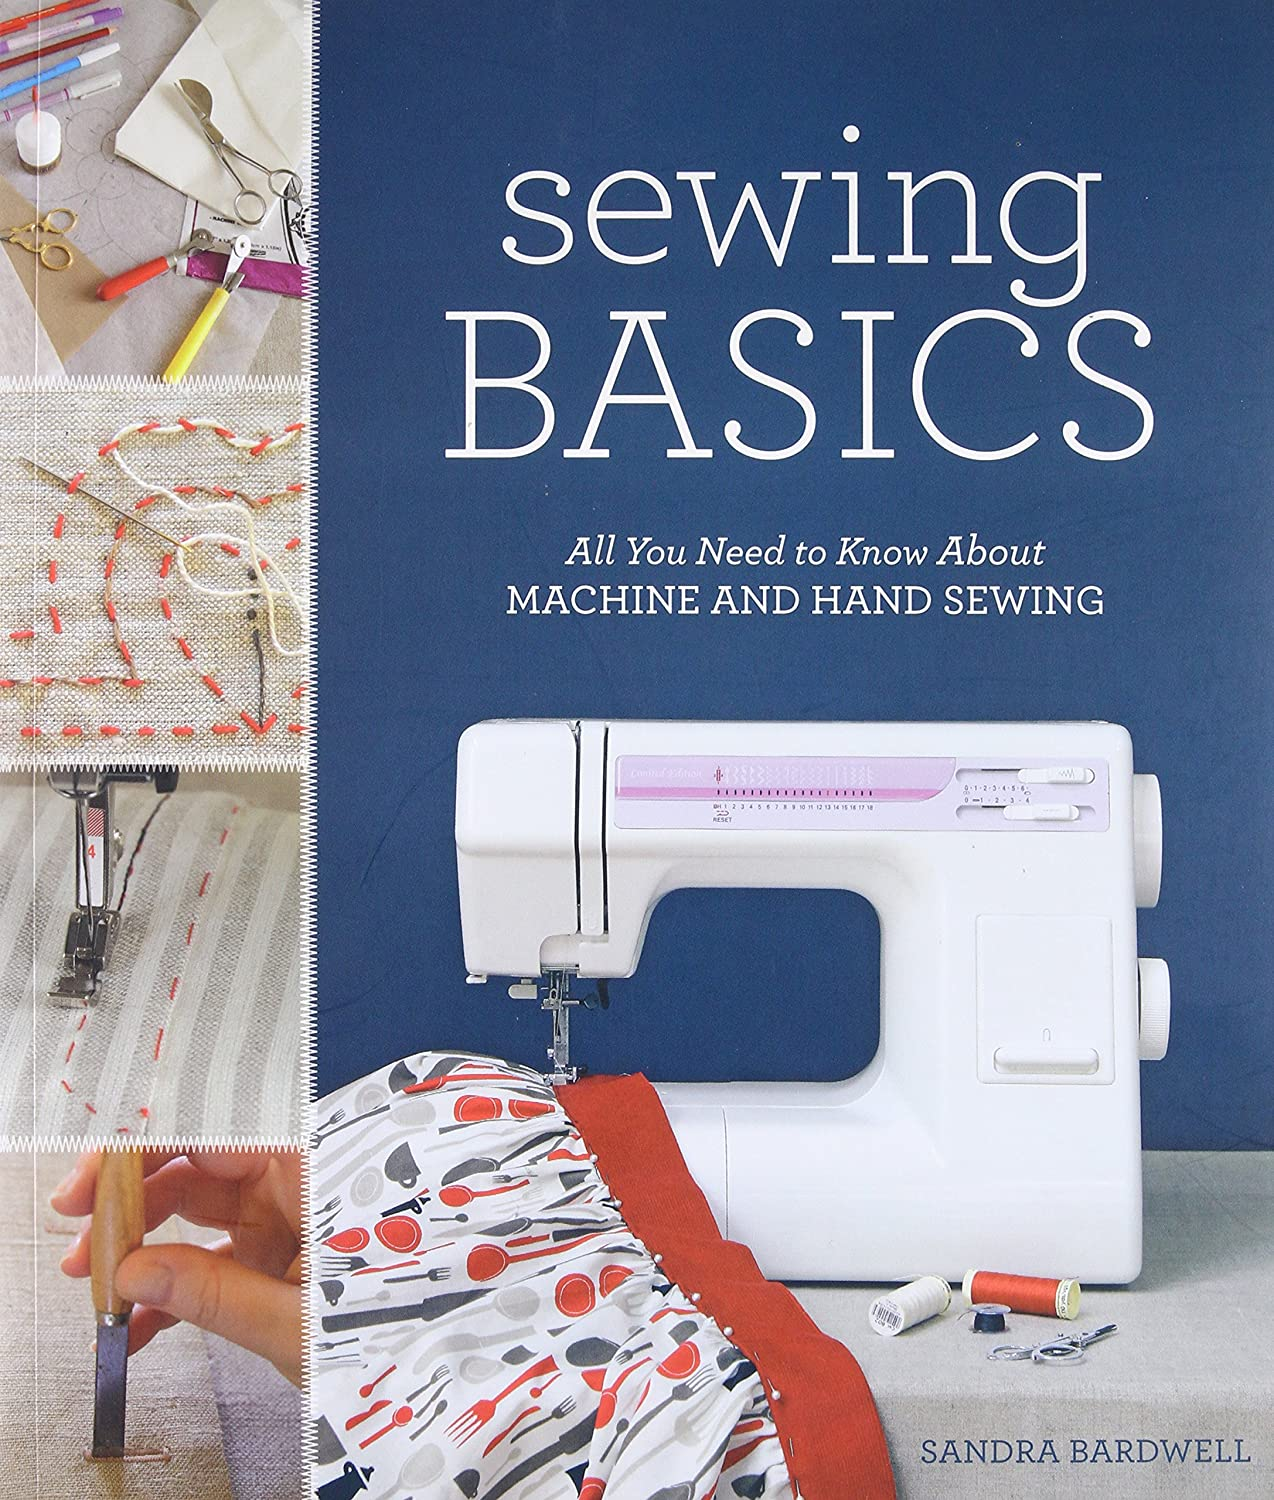 Amazon sewing basics all you need to know about machine and amazon sewing basics all you need to know about machine and hand sewing sandra bardwell arts crafts sewing jeuxipadfo Images